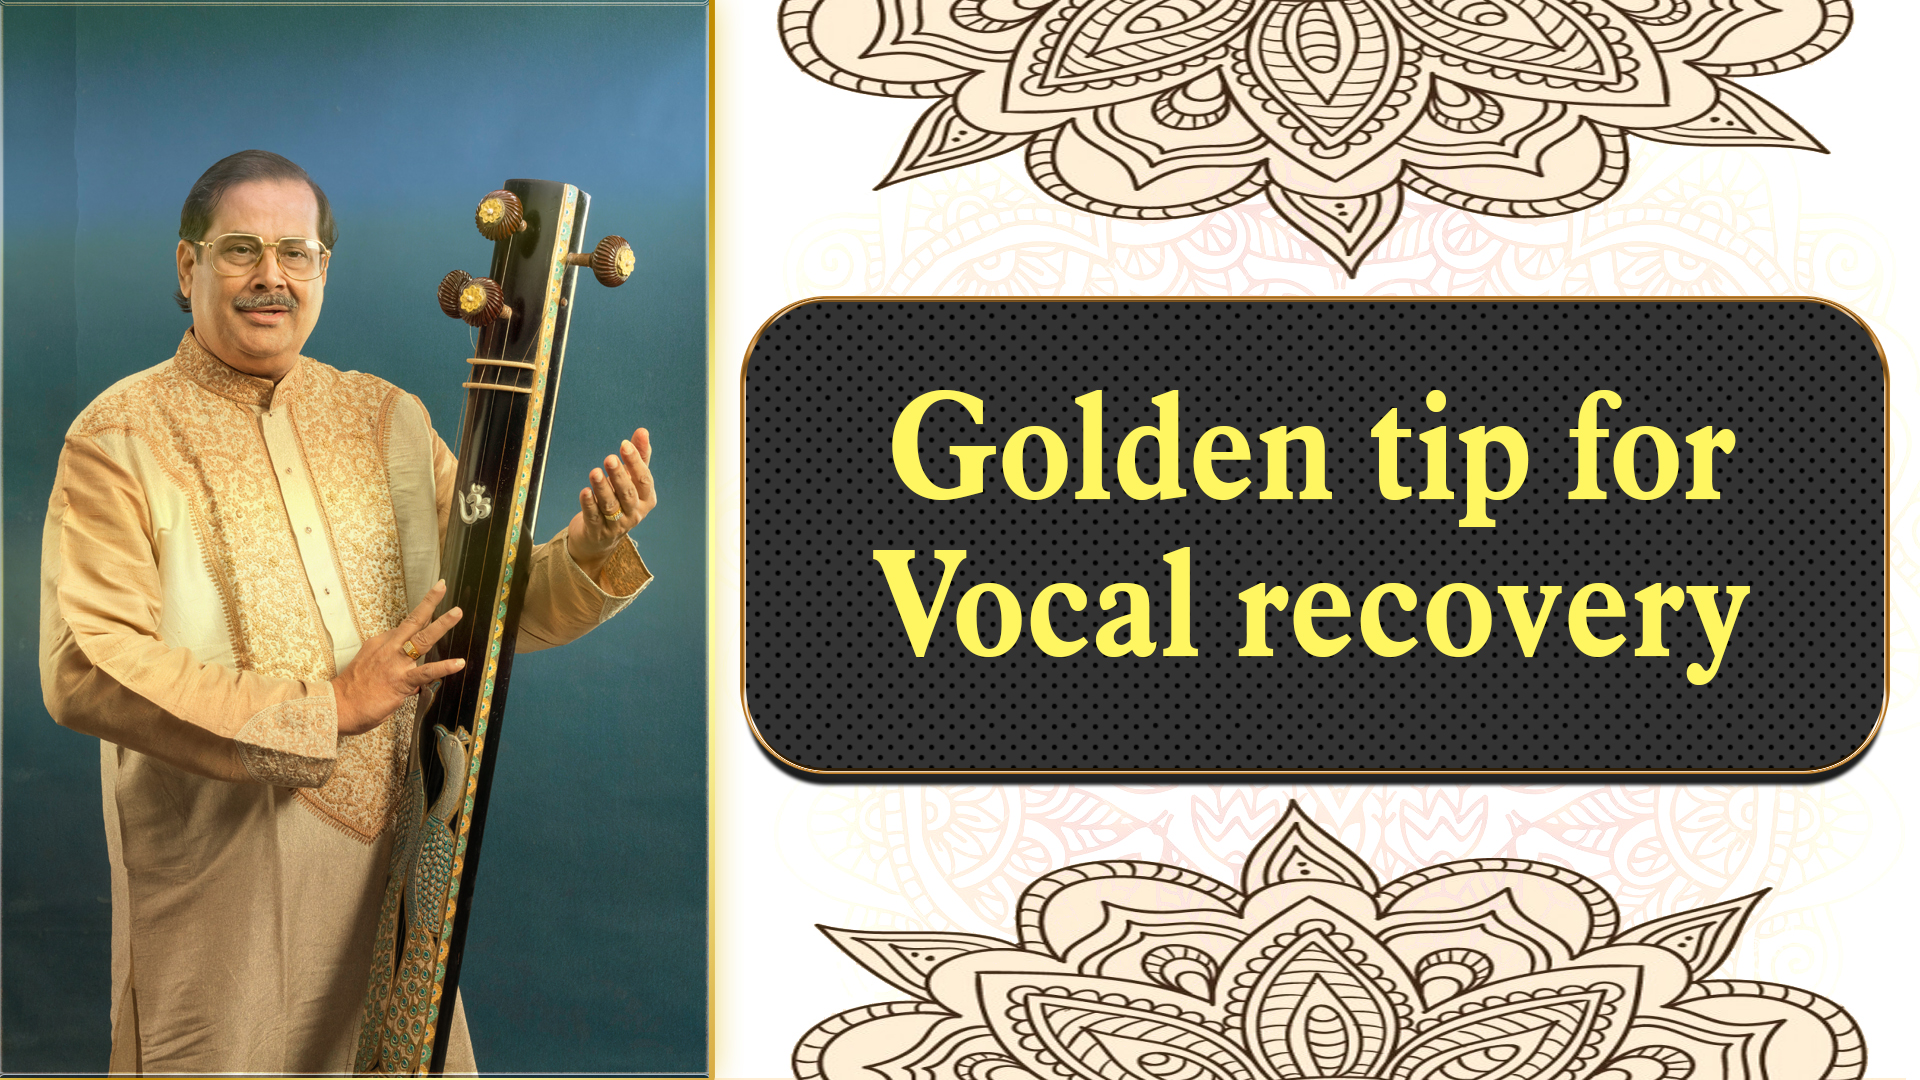 6- Golden tip for Vocal recovery from Gurujee